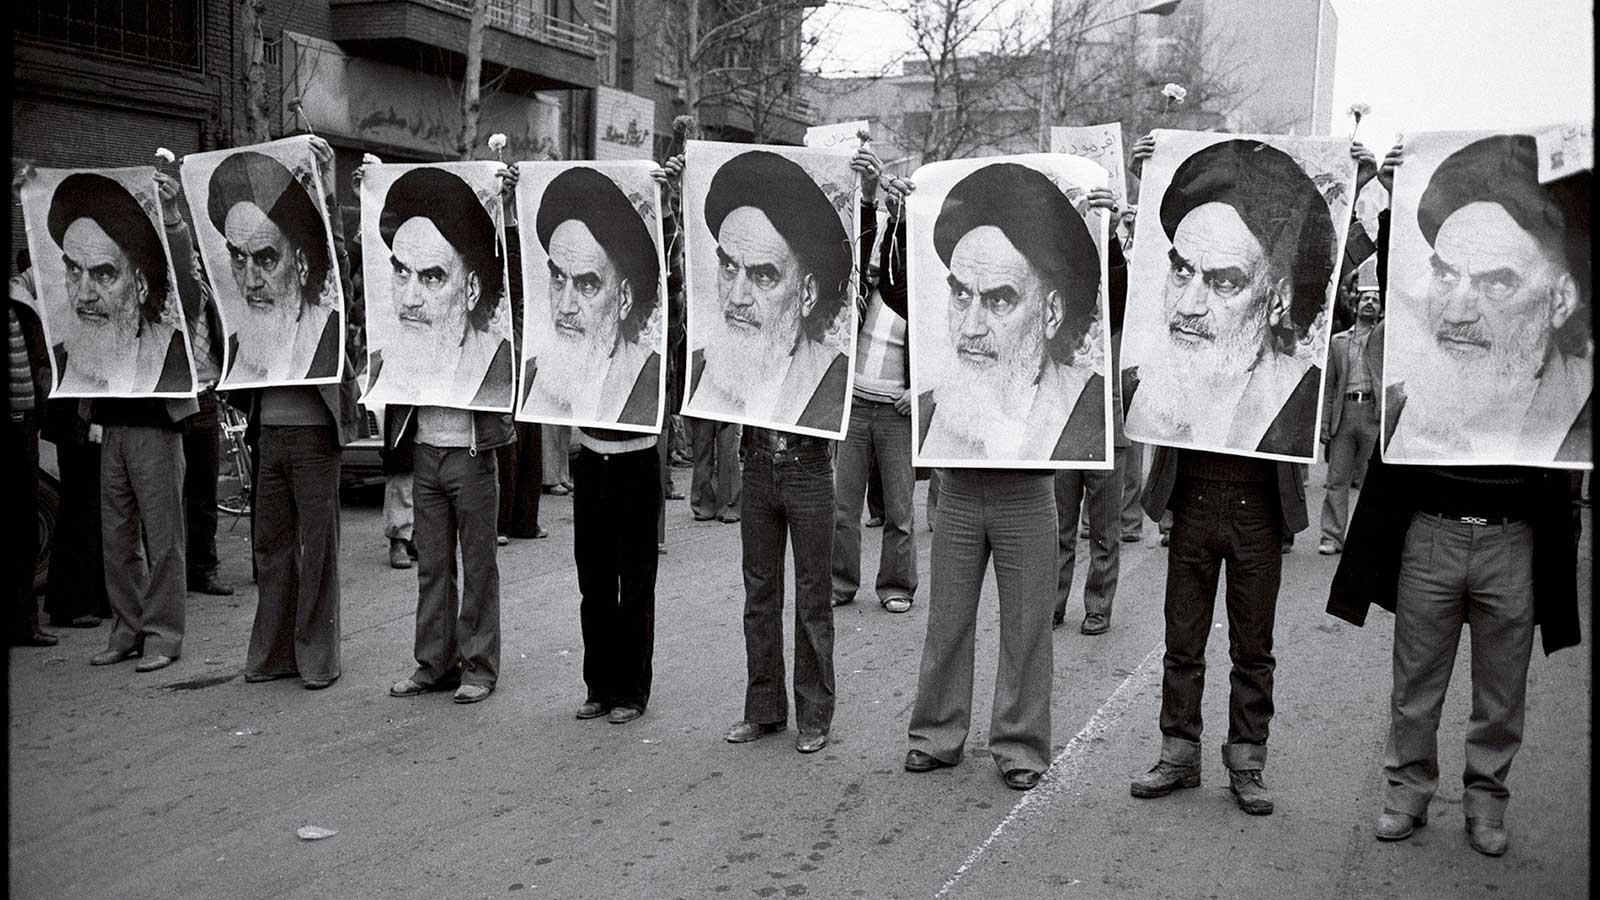 Row of men holding Khomeini's photo as part of a protest linked to the Iranian Revolution.